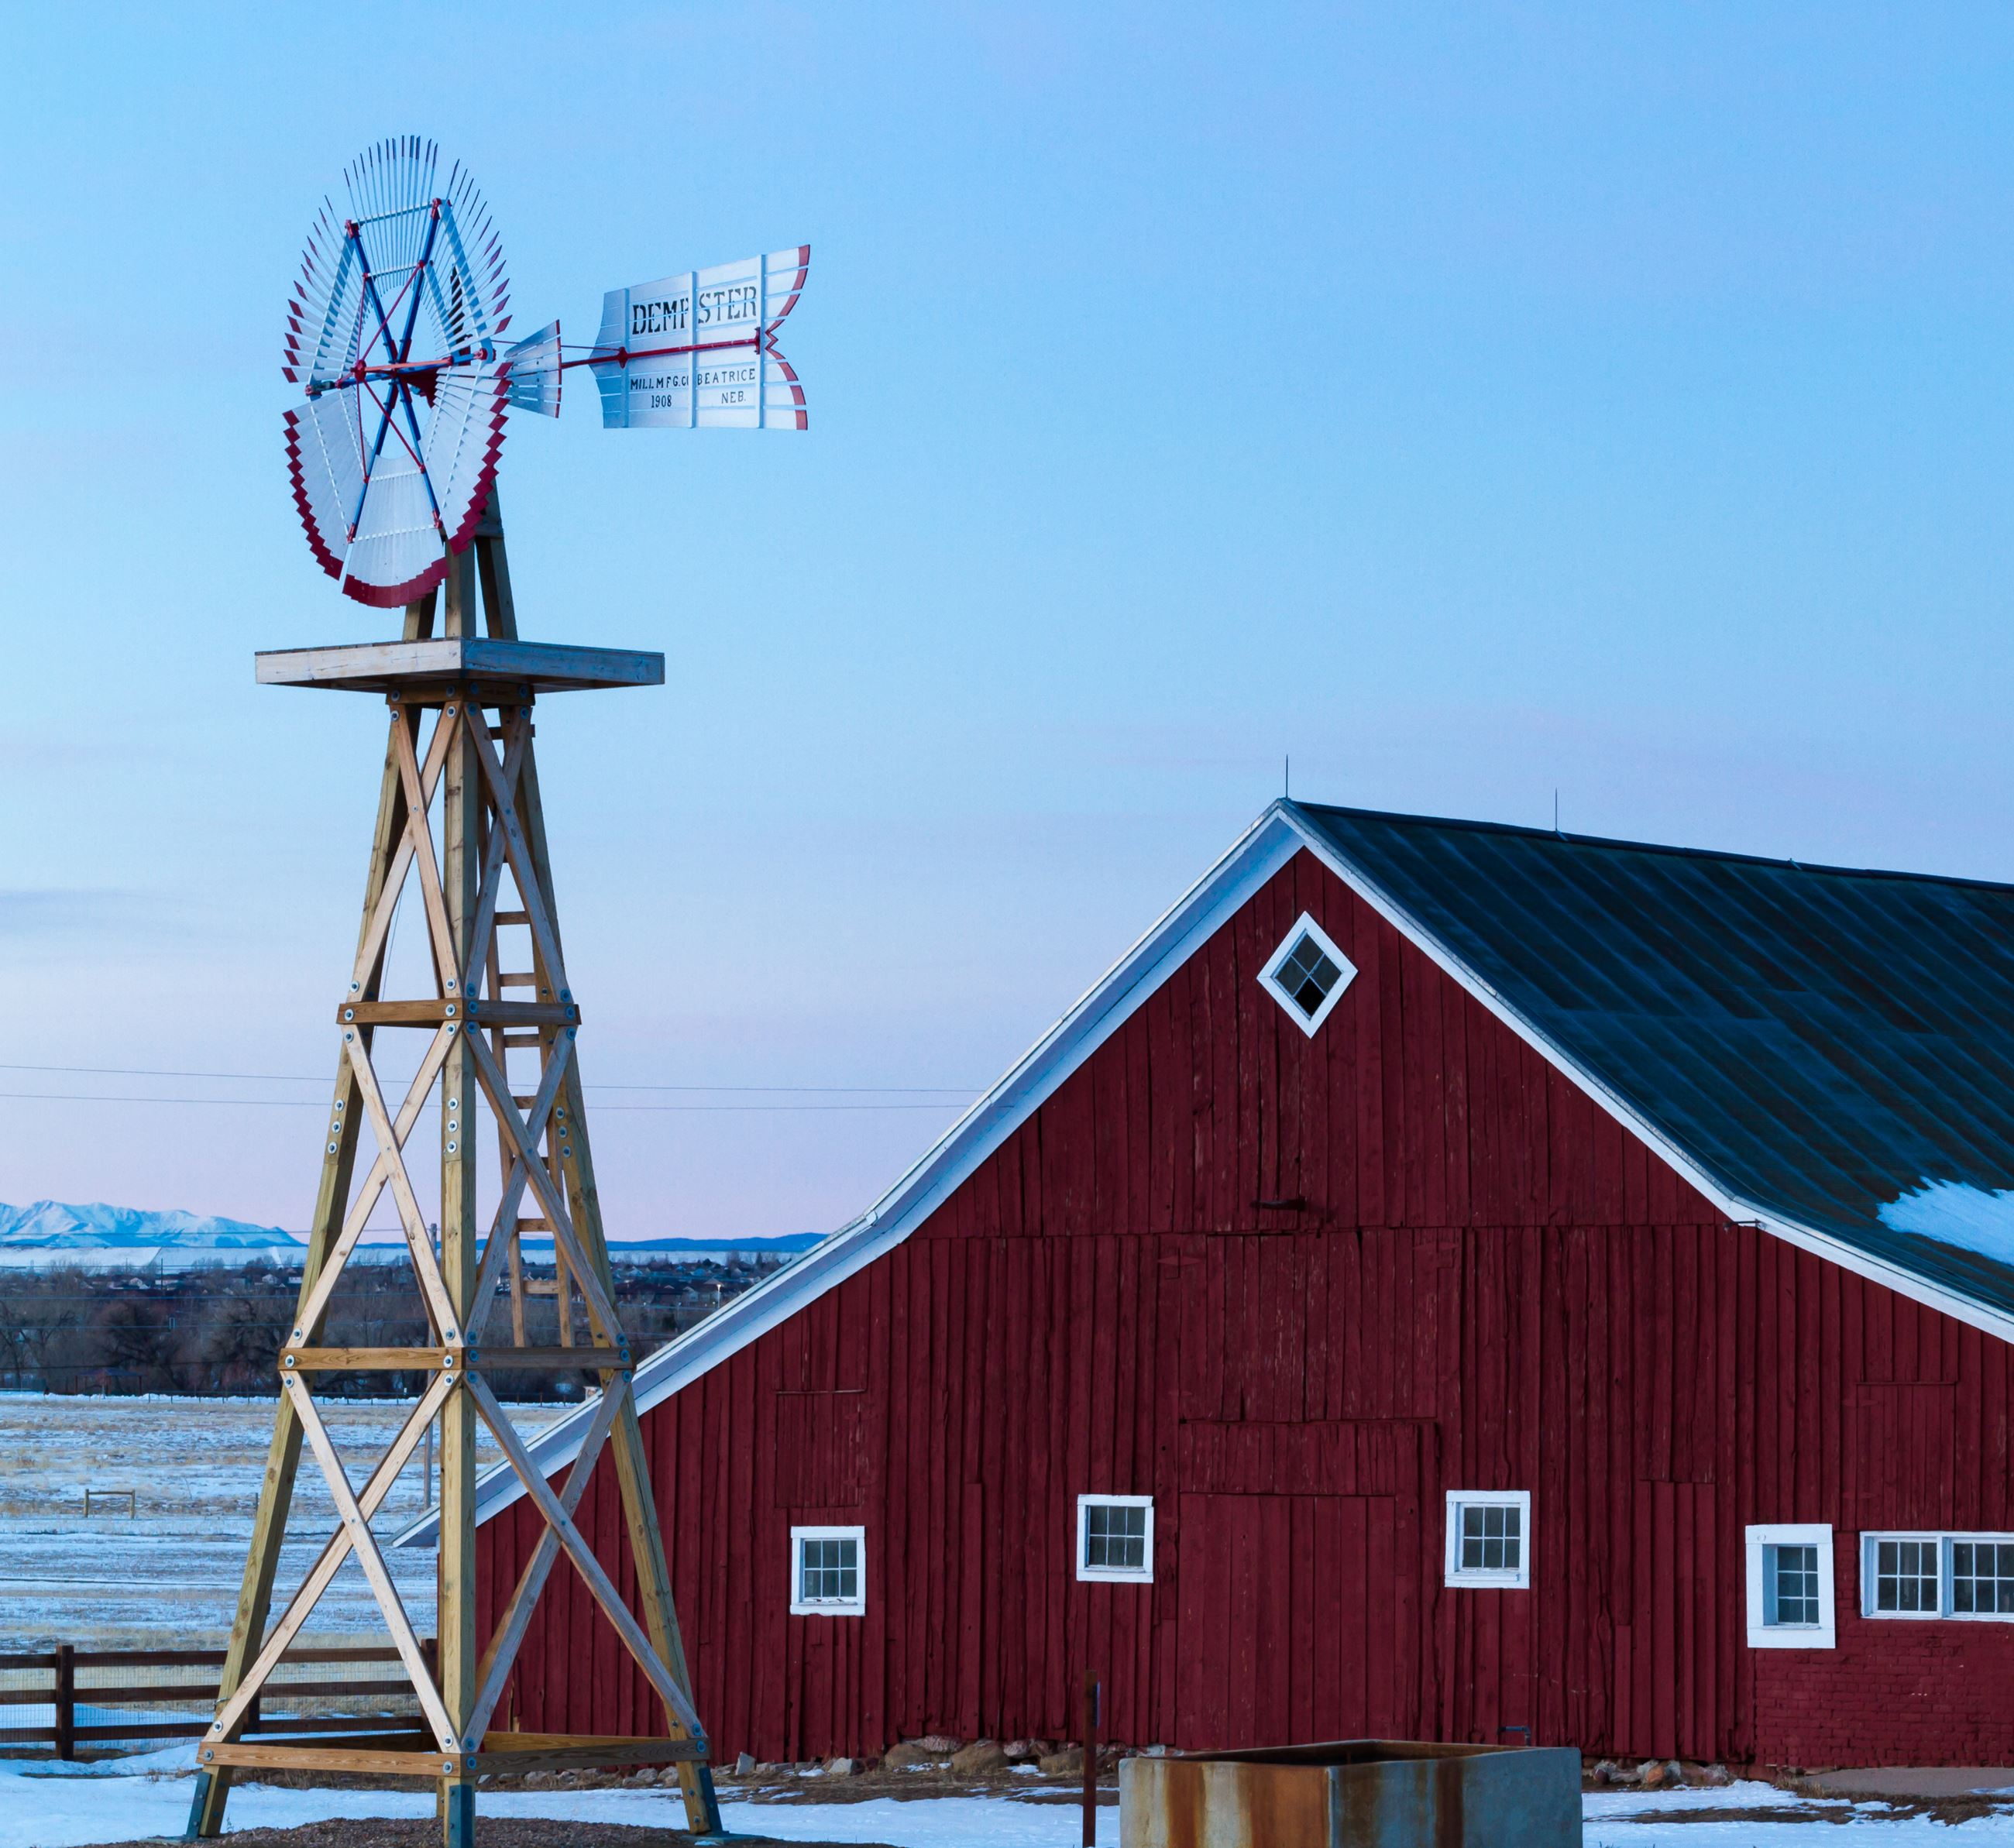 17 Mile House Farm Park Iconic Red Barn with windmill